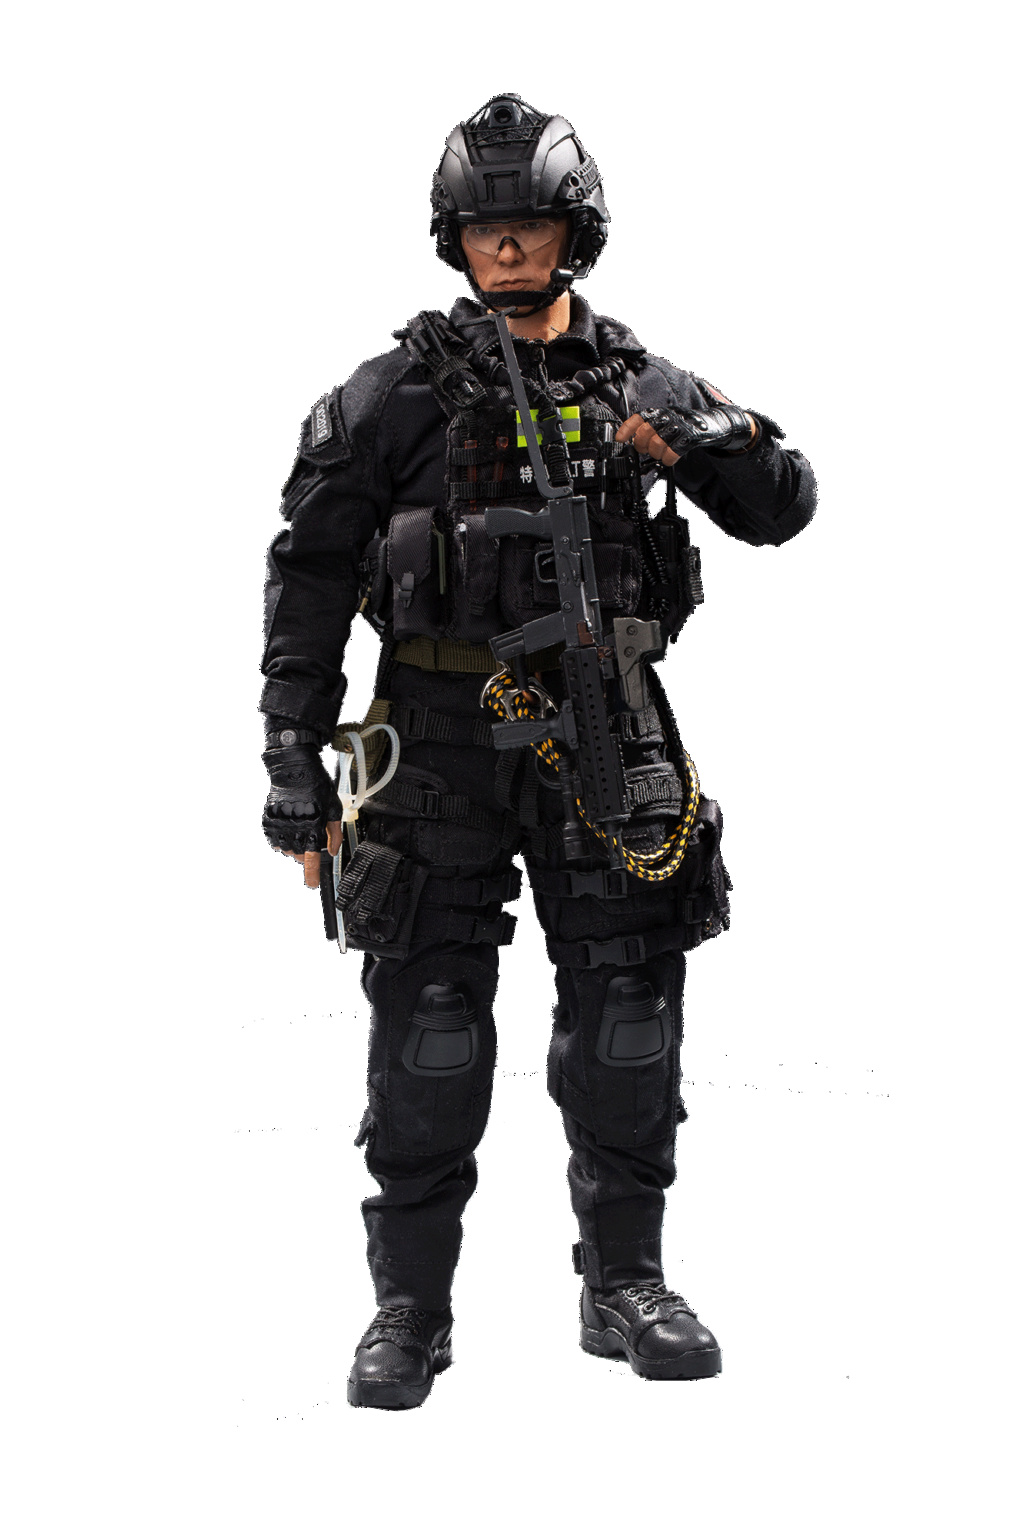 ArmySoul - NEW PRODUCT: FLAGSET & 沧久工作室新品: Army Soul Series 1/6 China Special Police Lightning Commando (FS73024#) 02181410